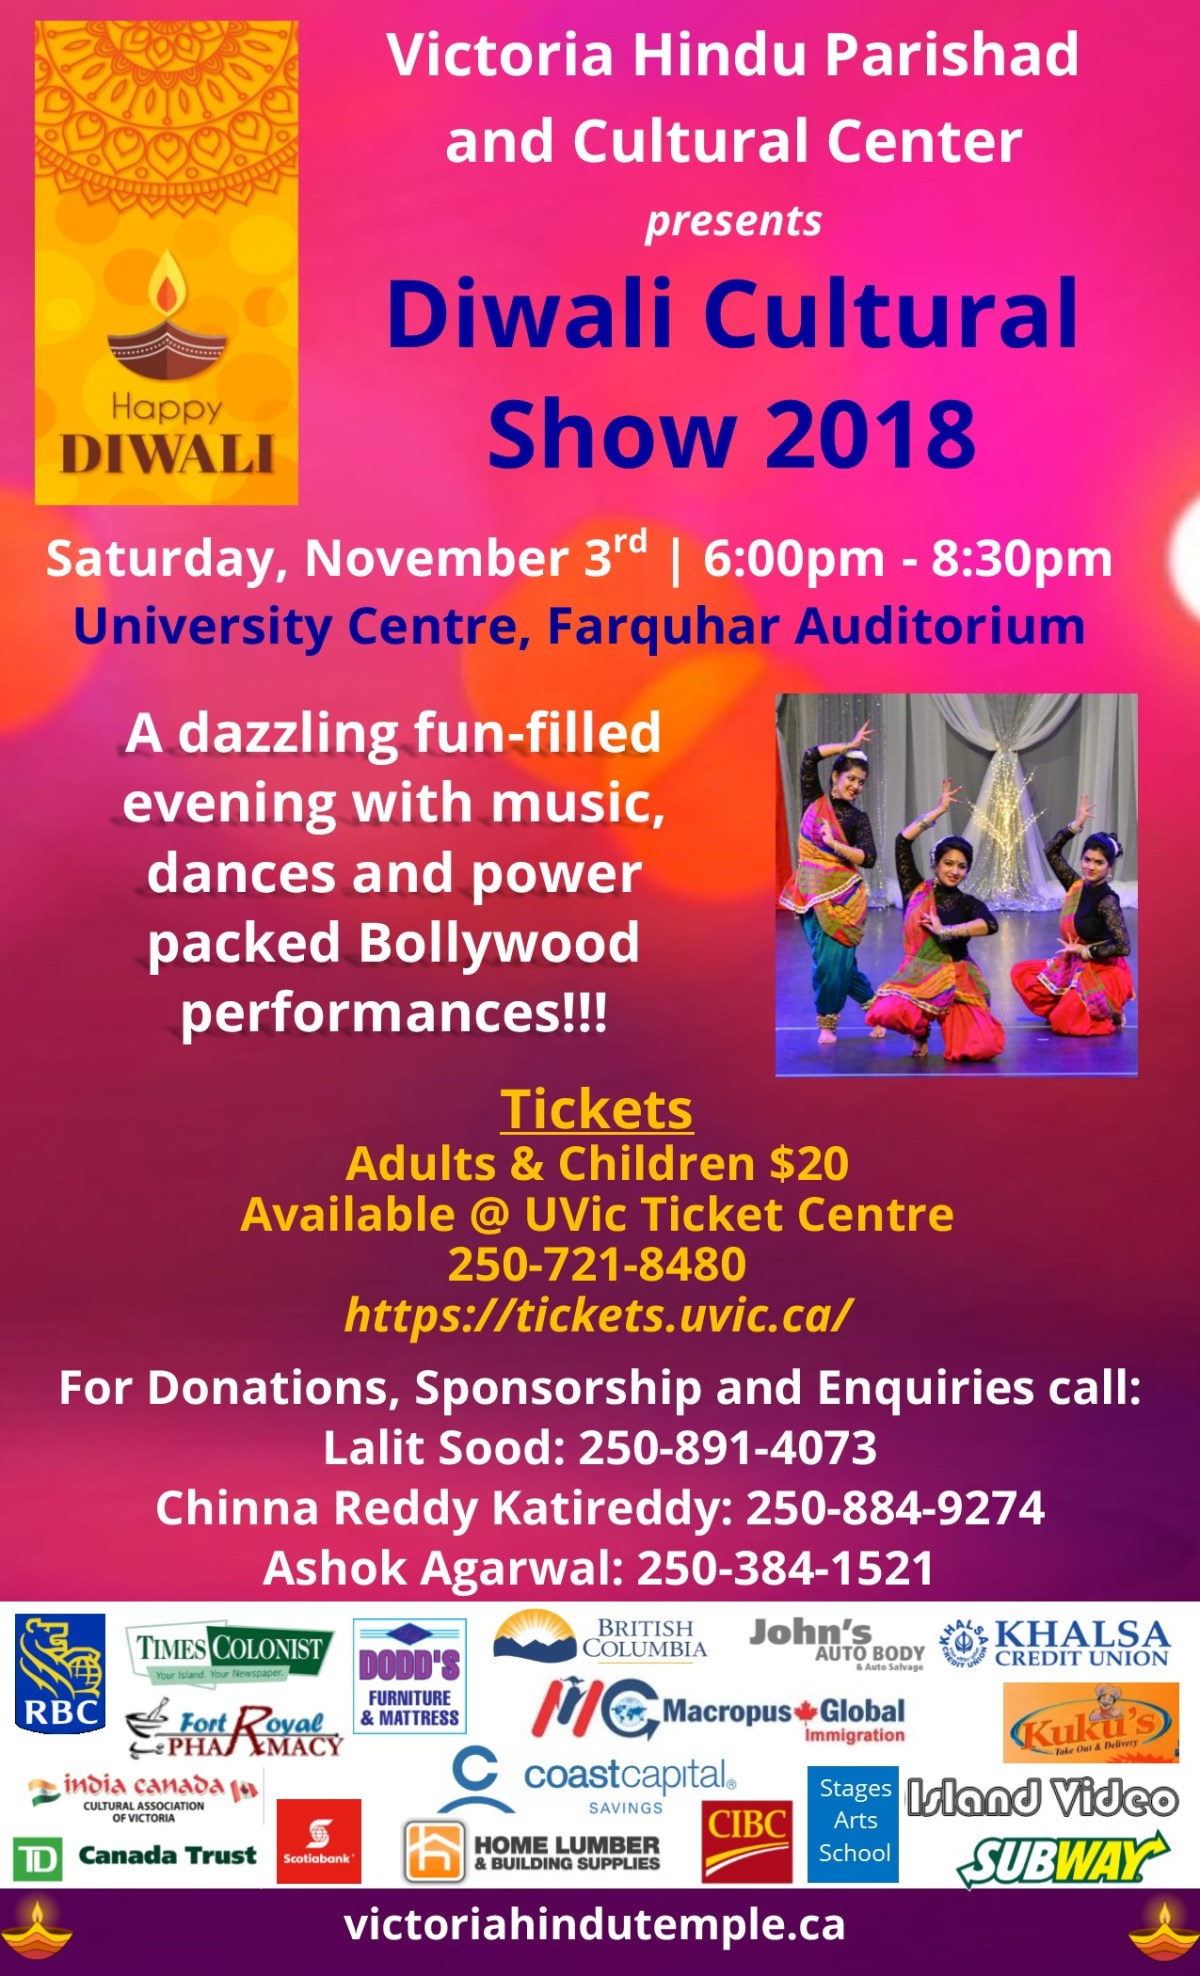 diwali-show--saturday-november-3rd-2018-2018-events-victoria-hindu-temple